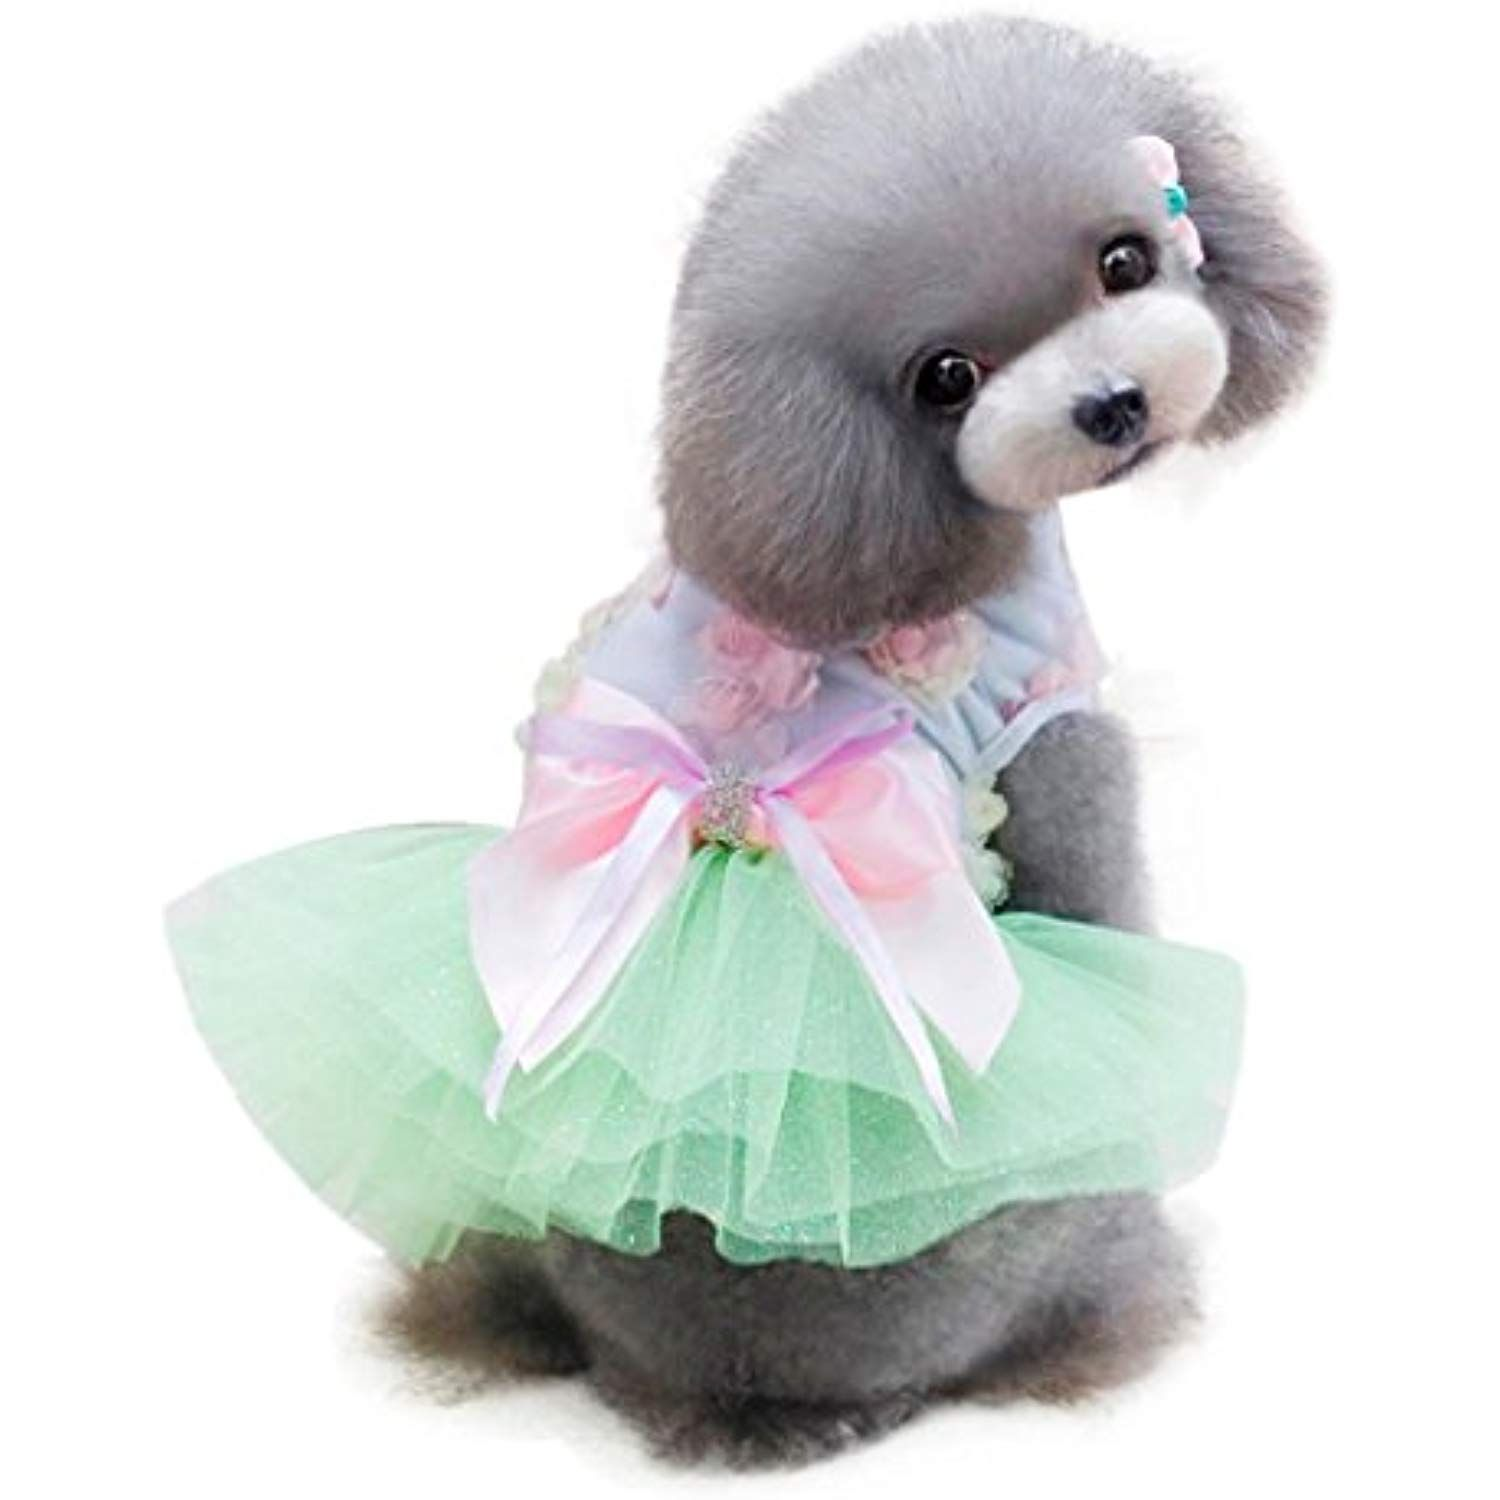 Neartime Puppy Dress Dog Clothes Pet Grid Skirt For Small Medium